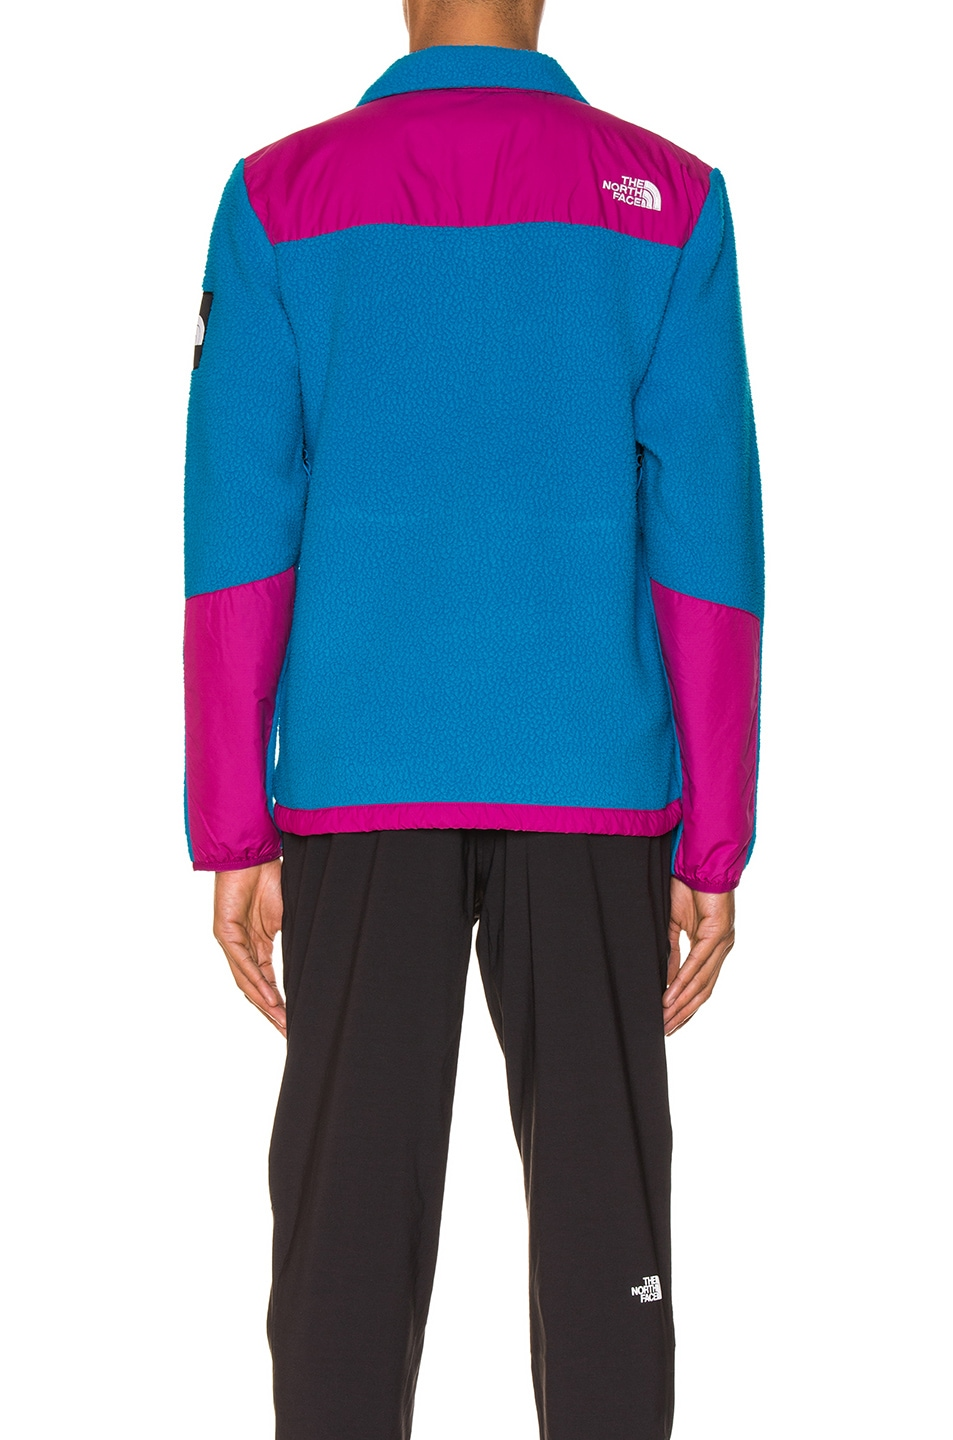 Image 5 of The North Face Black Box Denali Fleece Jacket in Acoustic Blue & Festival Pink